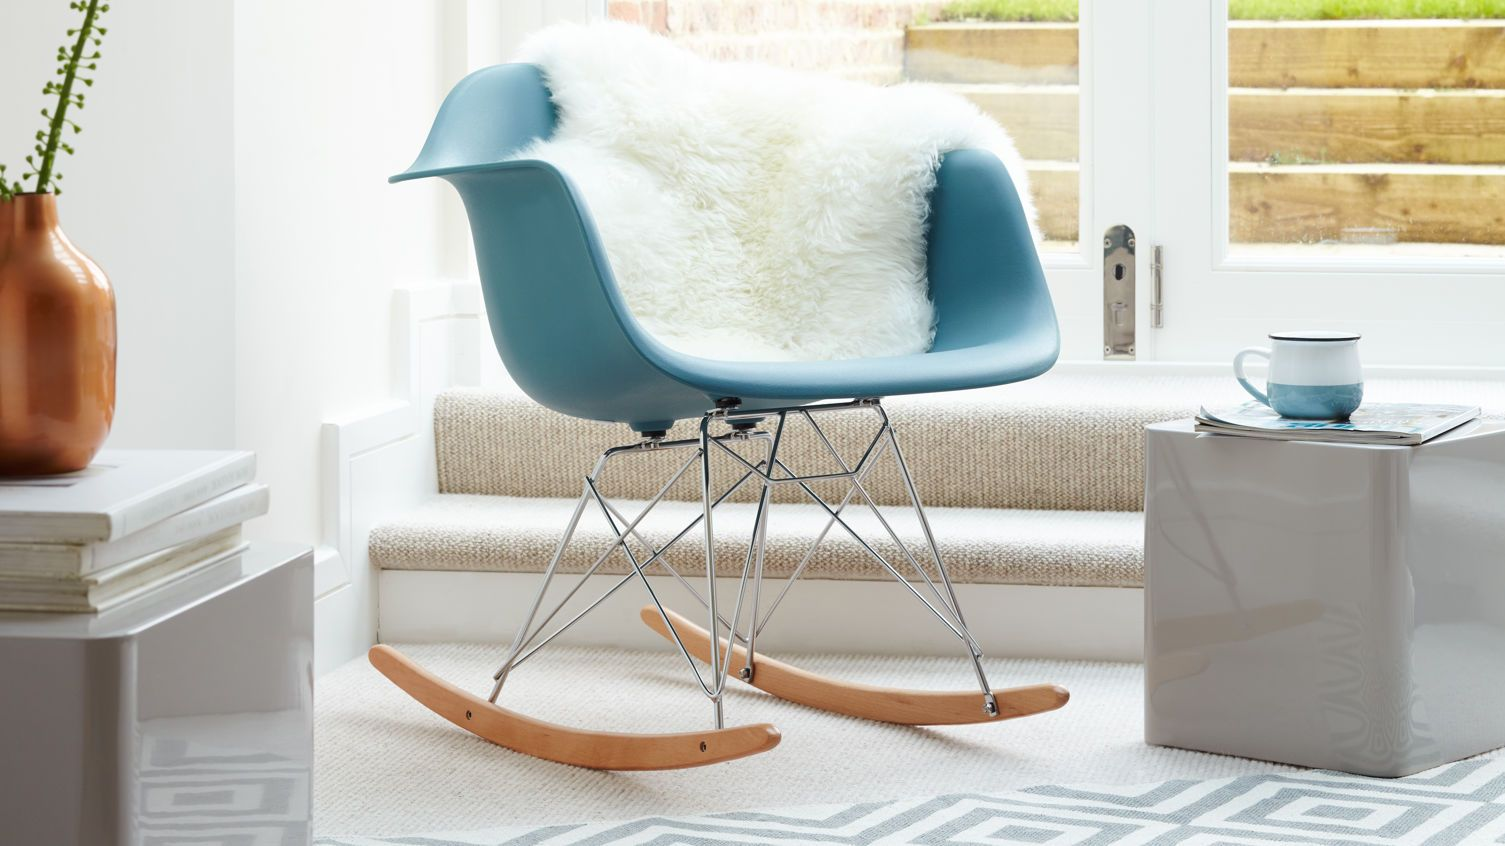 Teal Rocking Chair Eames Rocking Chair In Teal From Danetti Esszimmer